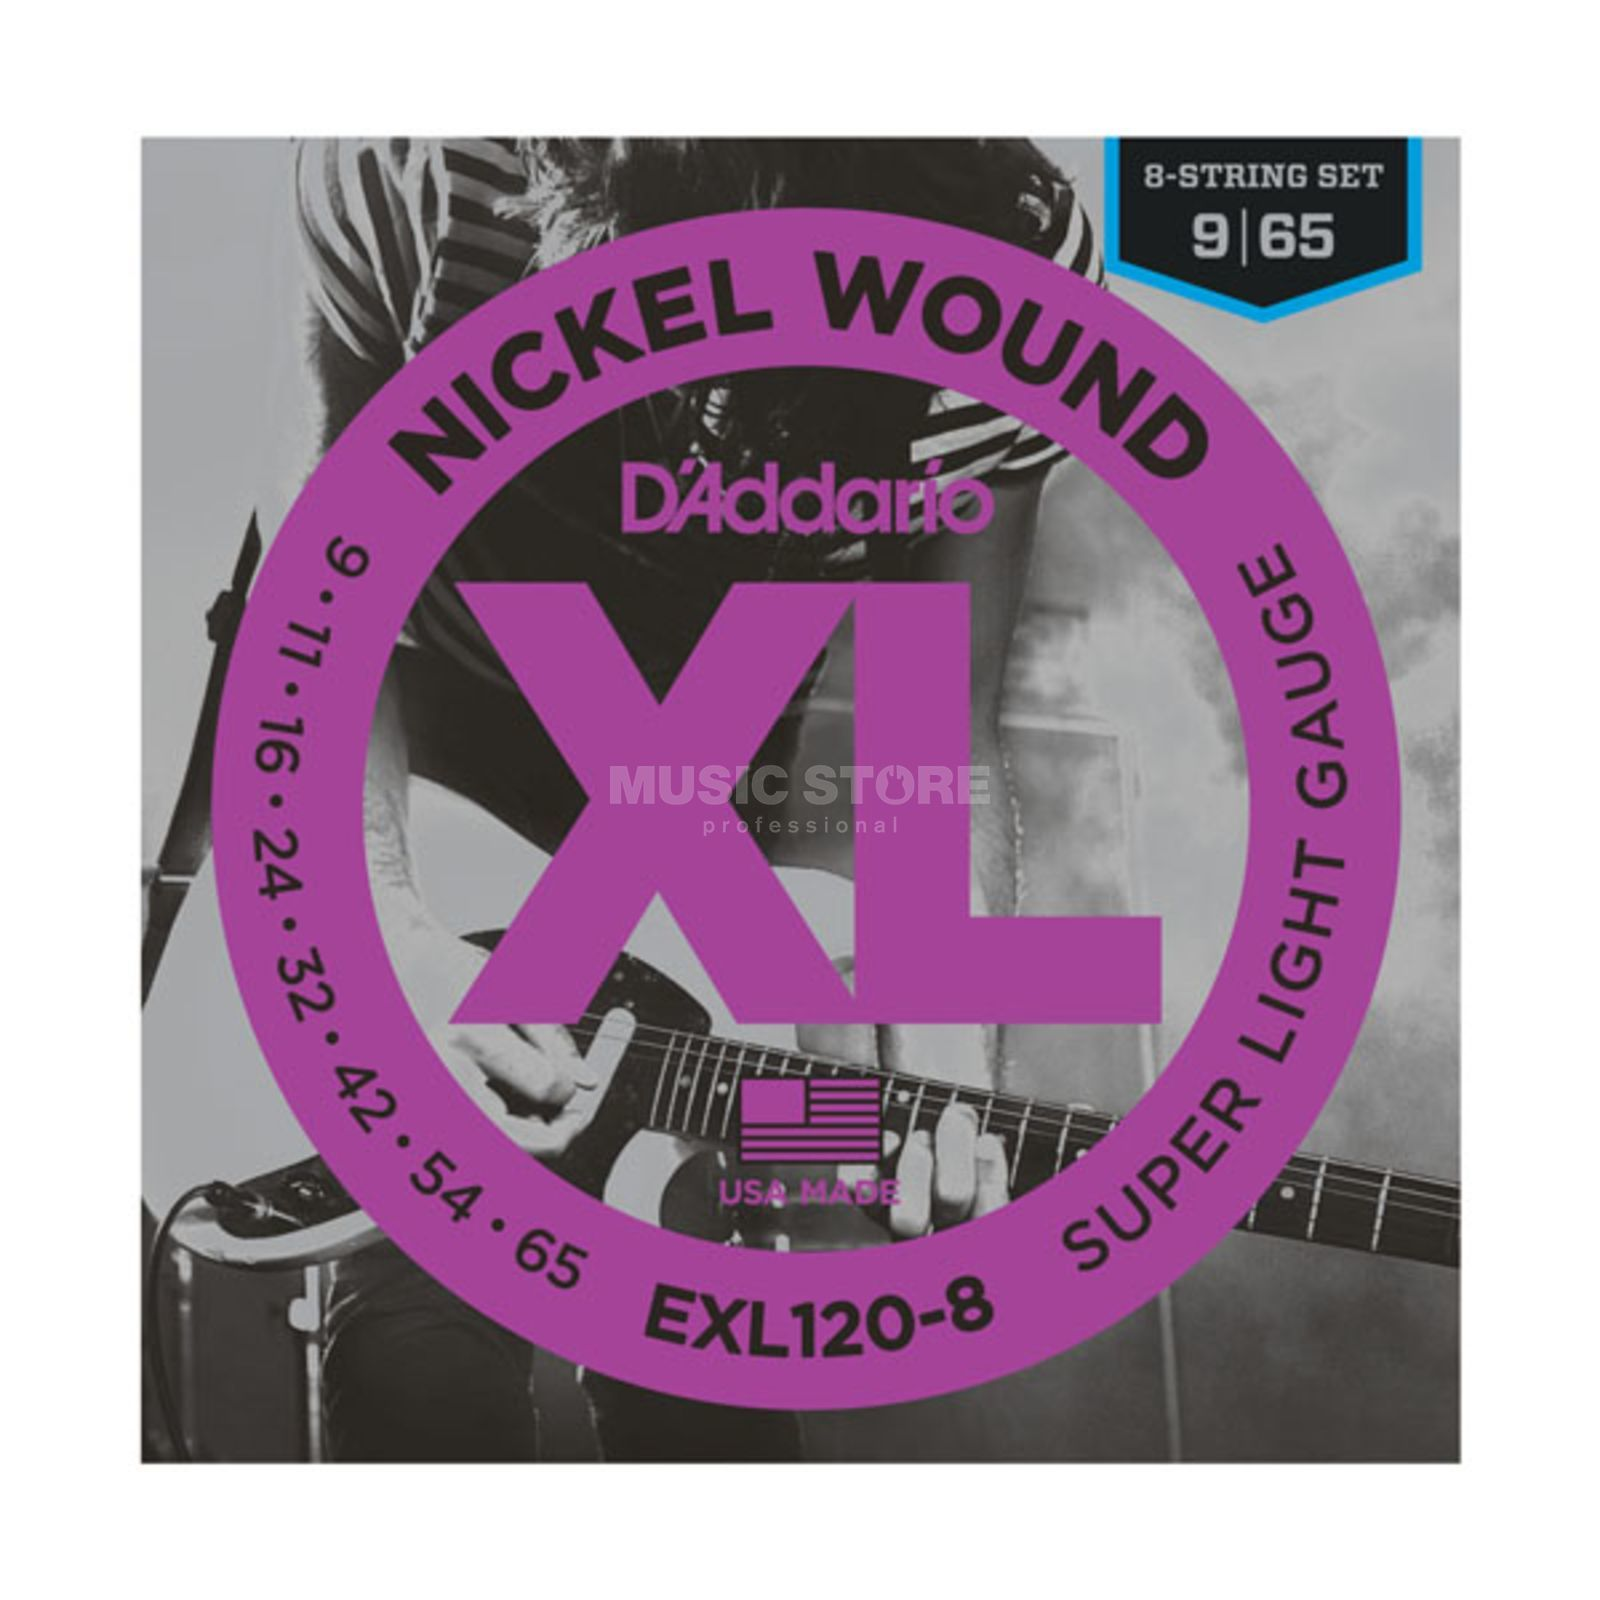 D'Addario E-Guit.Strings EXL120-8 09-65 Nickel Wound 8-String Produktbillede